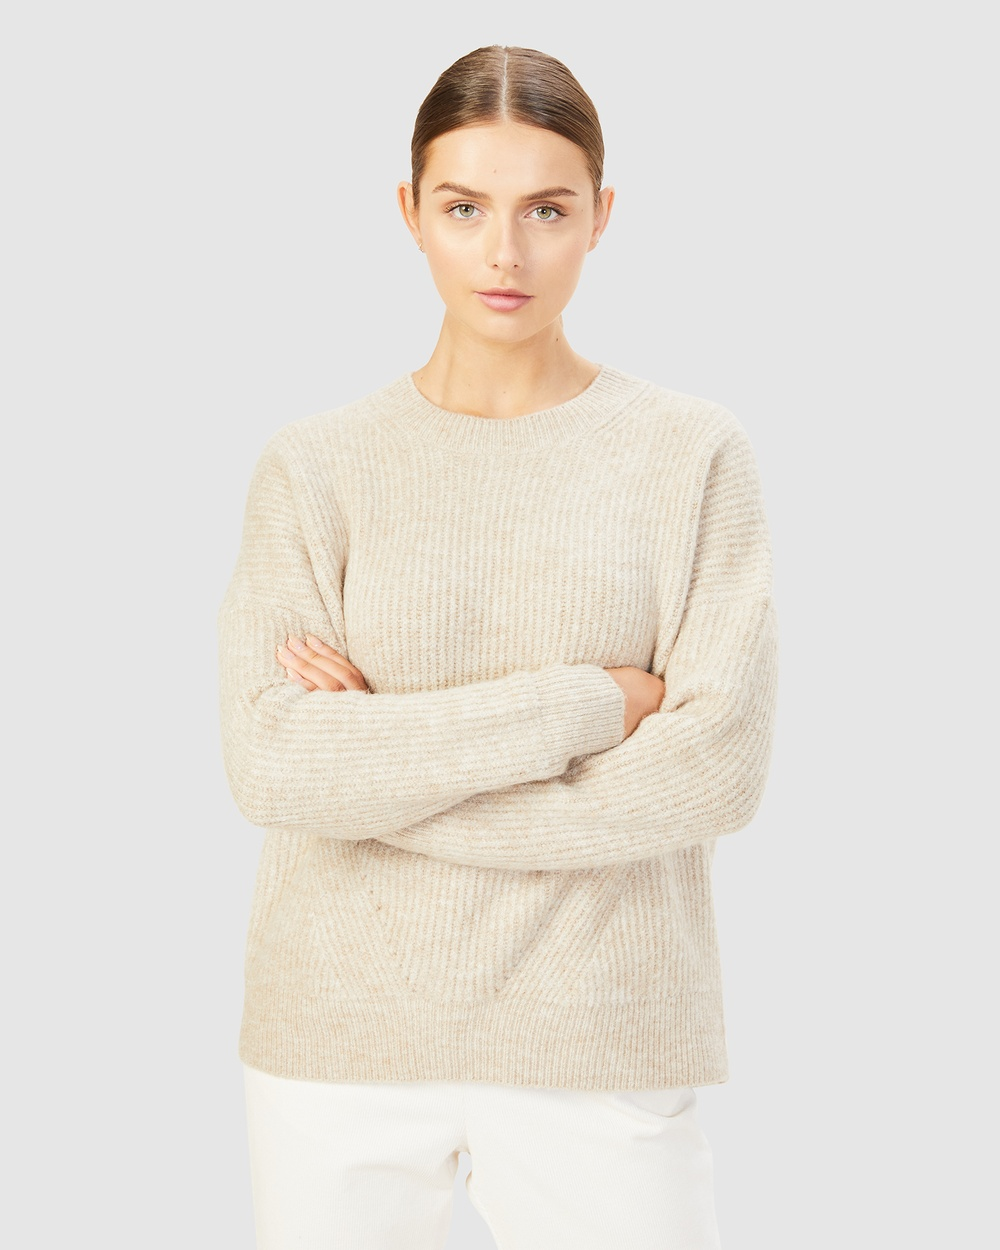 French Connection Stitch Detail Crew Neck Knit Jumpers & Cardigans CAMEL Australia